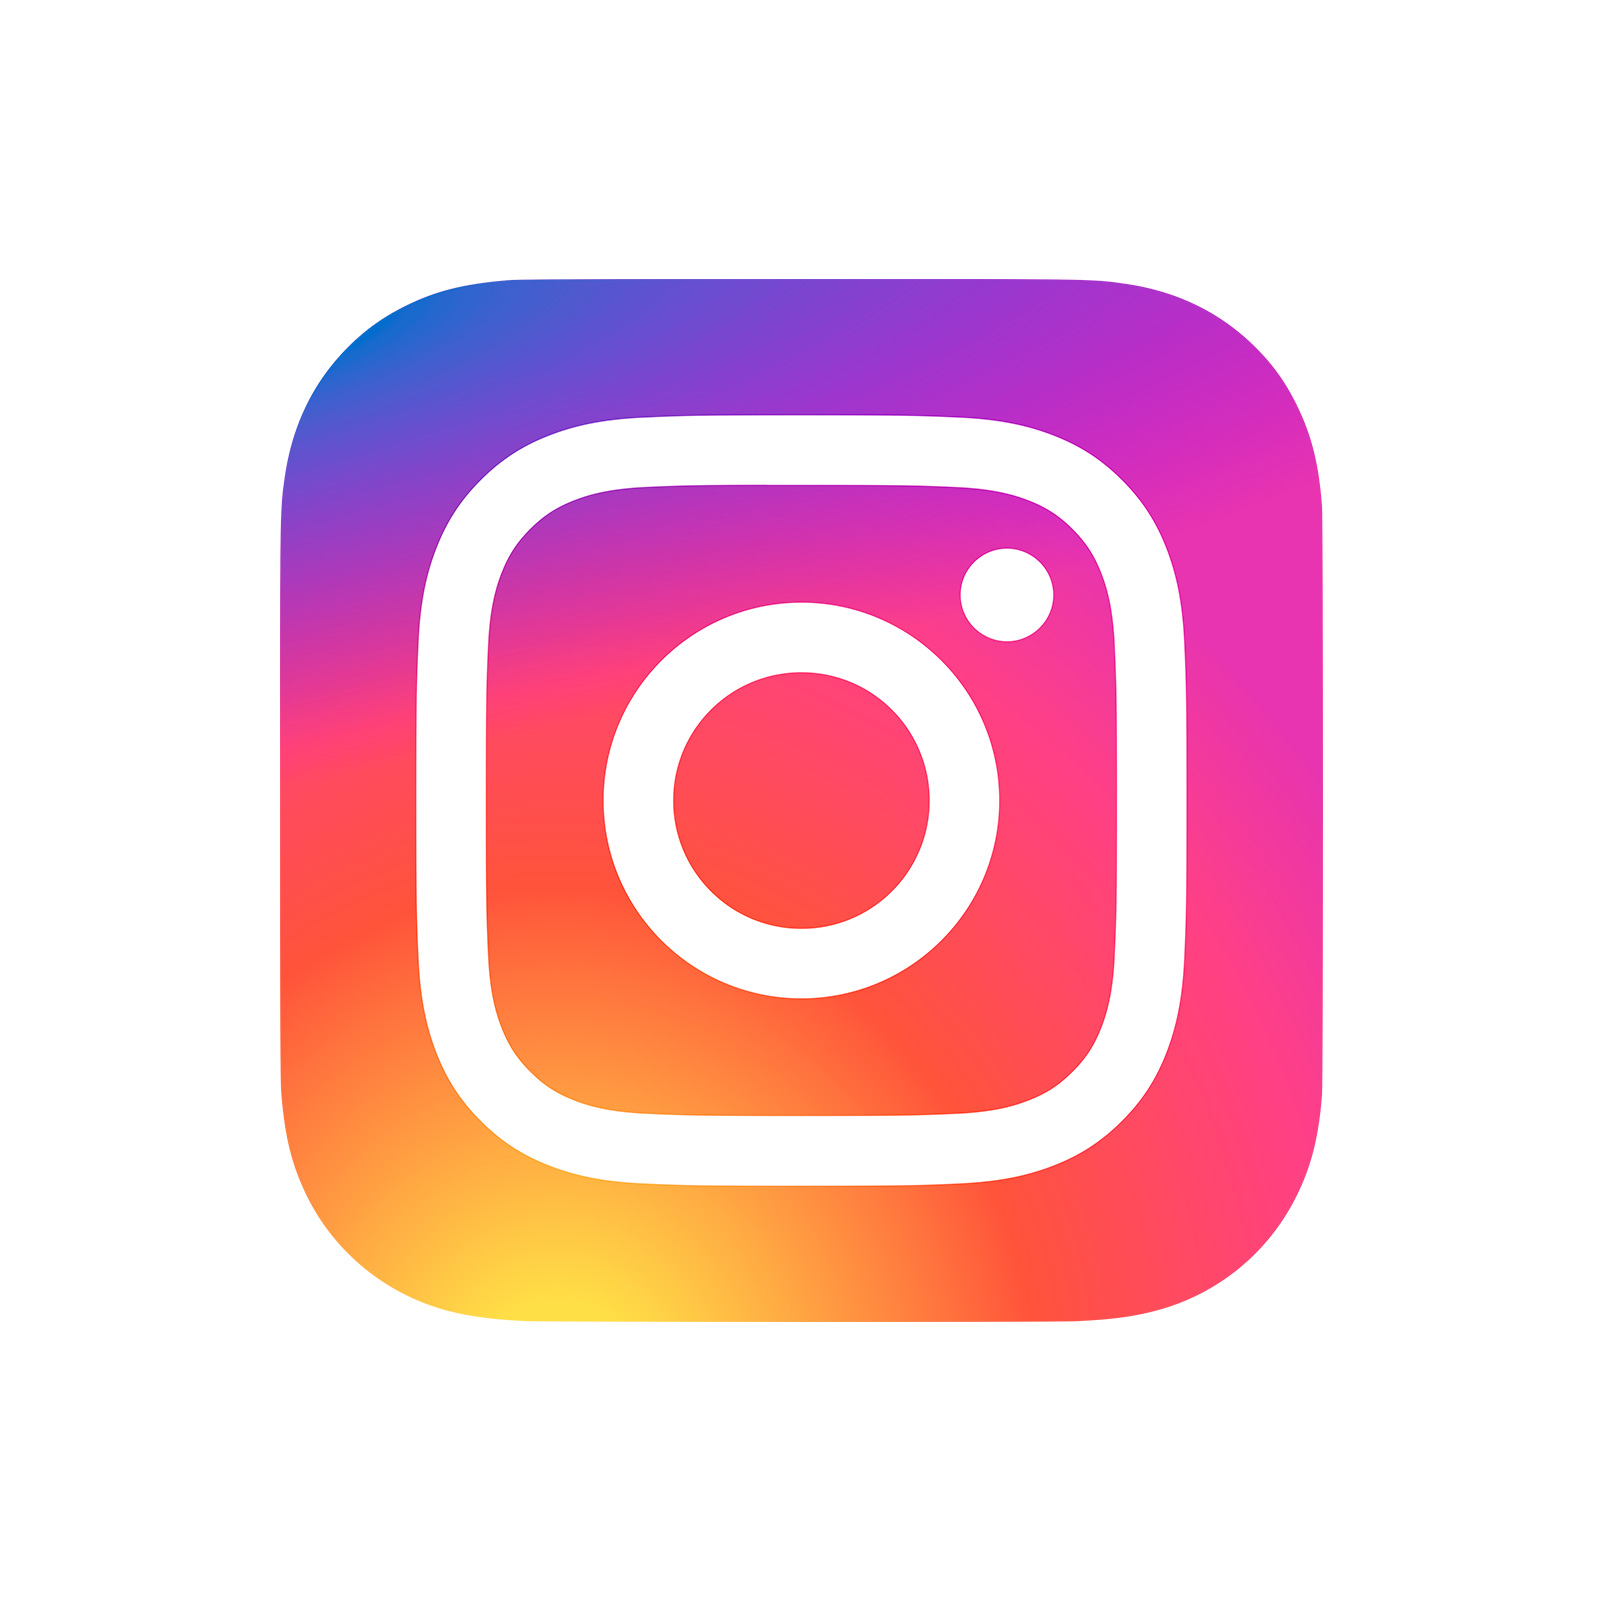 Instagram is a photo and video-sharing social networking service owned by Facebook, Inc.